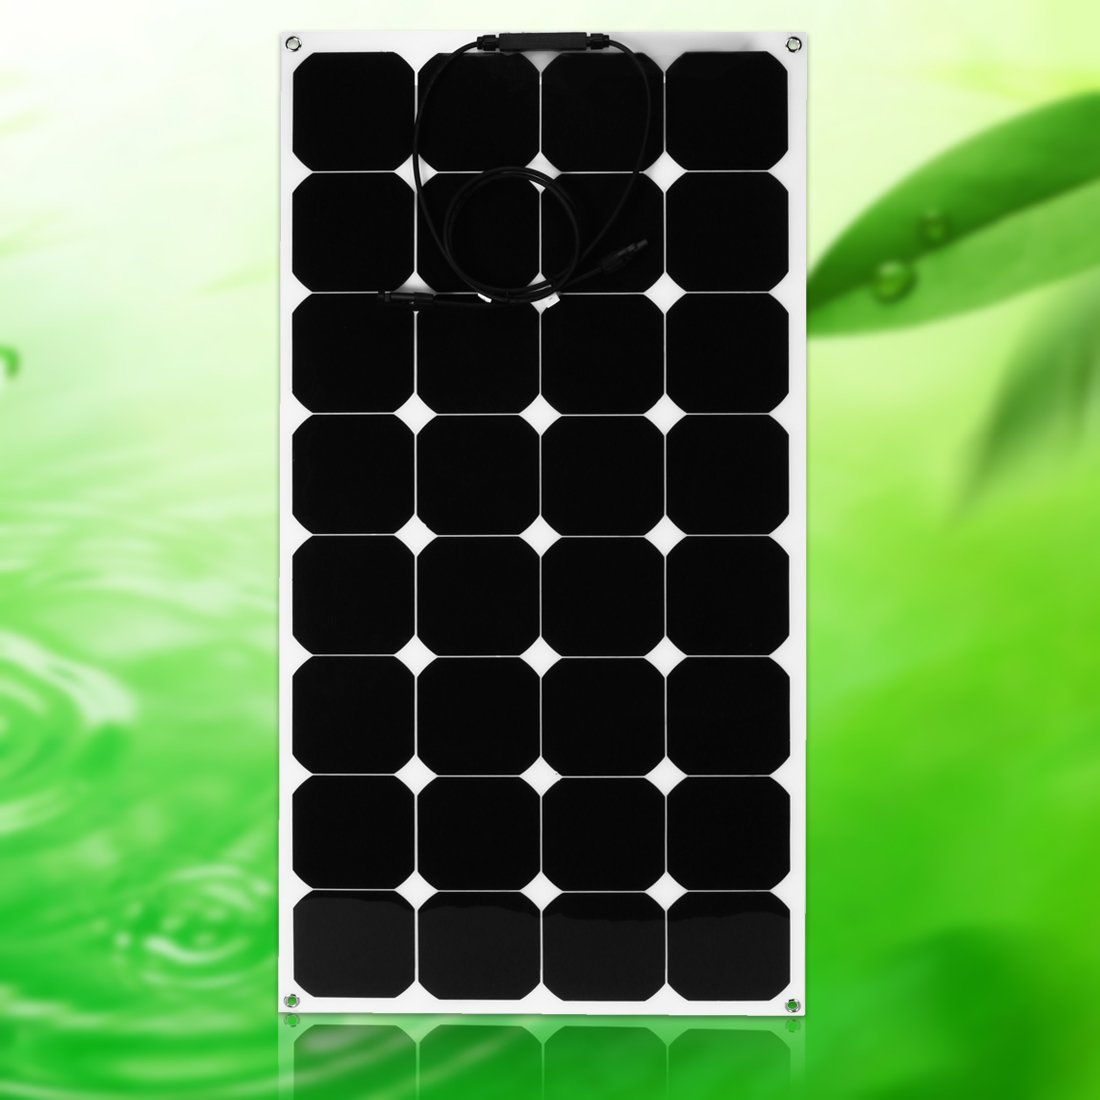 uxcell 2pcs 100W 18V 12V Solar Panel Charger Solar Cell Ultra Thin Flexible with MC4 Connector Charging for RV Boat Cabin Tent Car by BU LU SHI (Image #5)